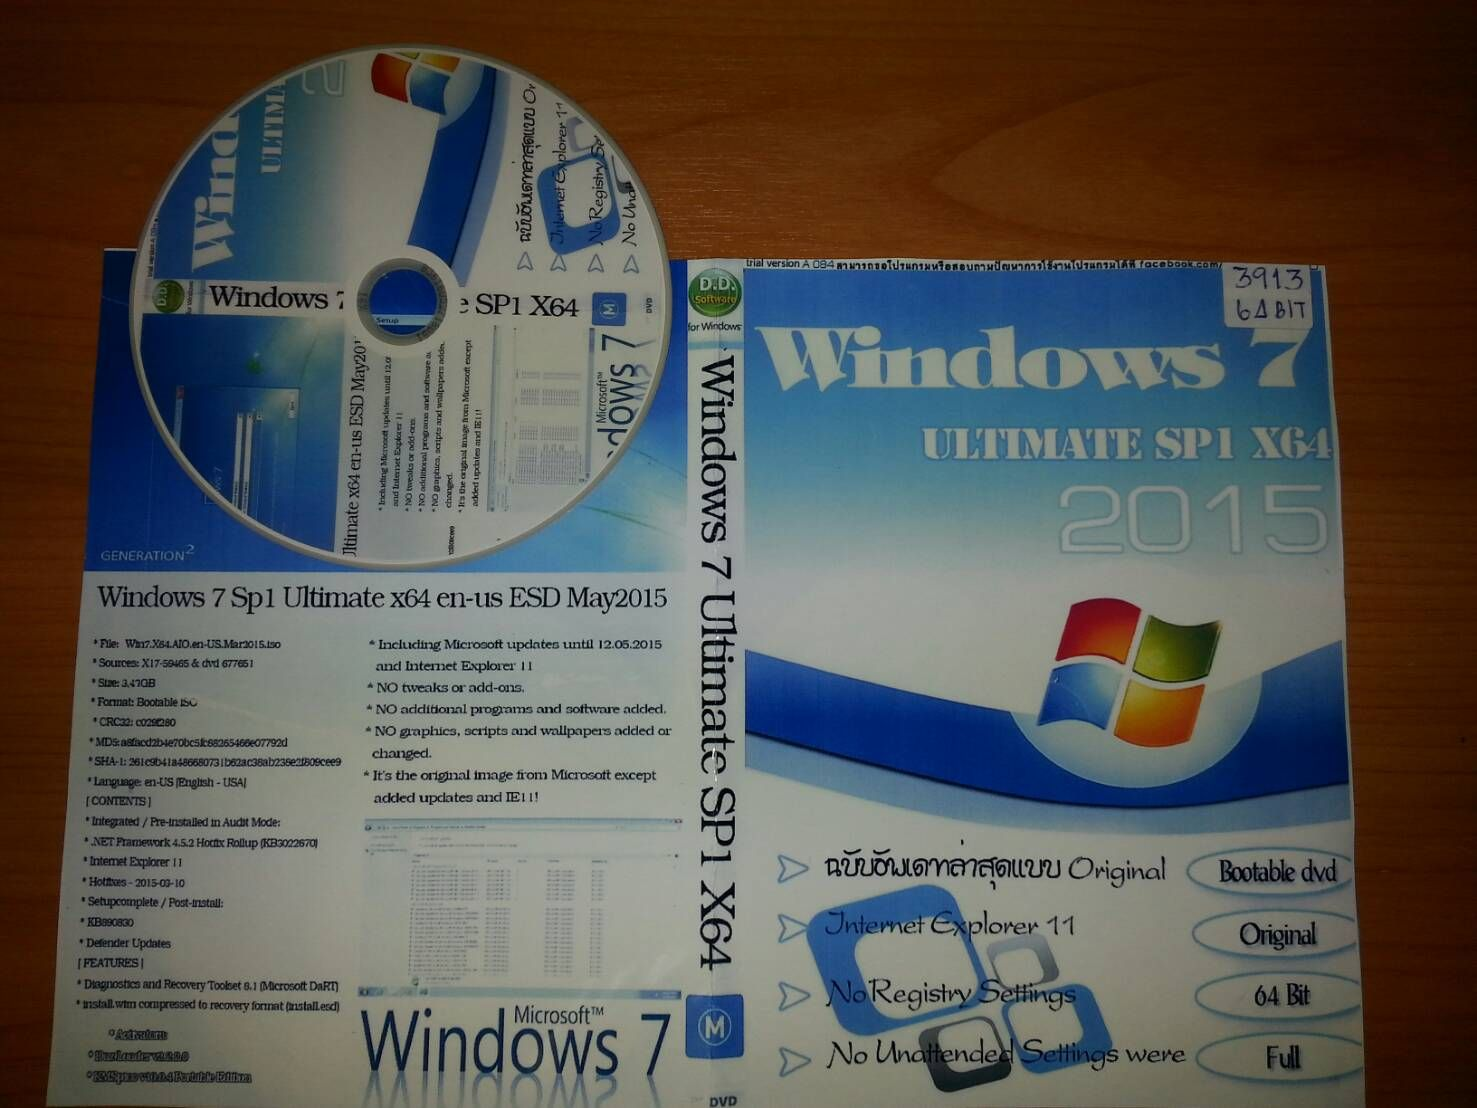 3139 Windows 7 Ultimate Sp1 X64 en-us ESD May2015 ออโต้คลิก